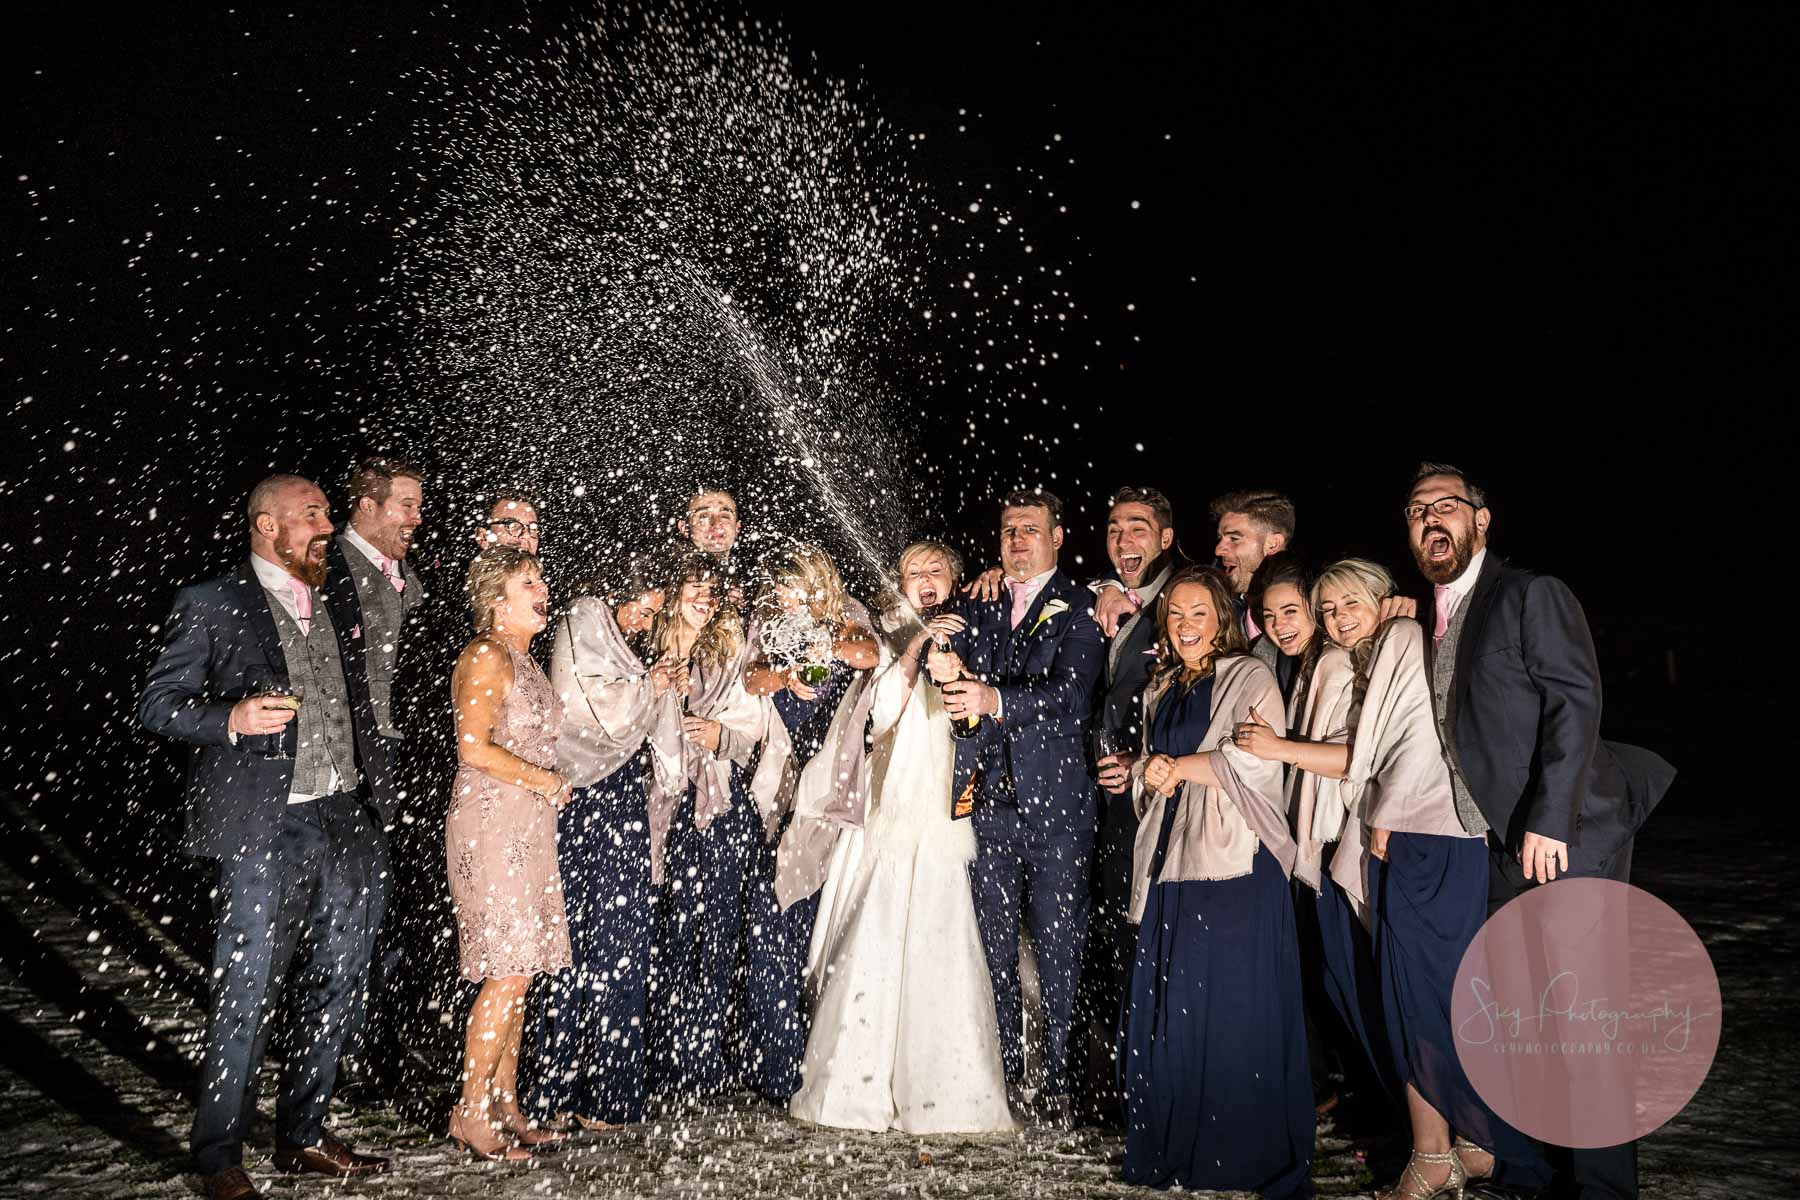 Amazing Champagen wedding photography of the wedding party laughing and smiling